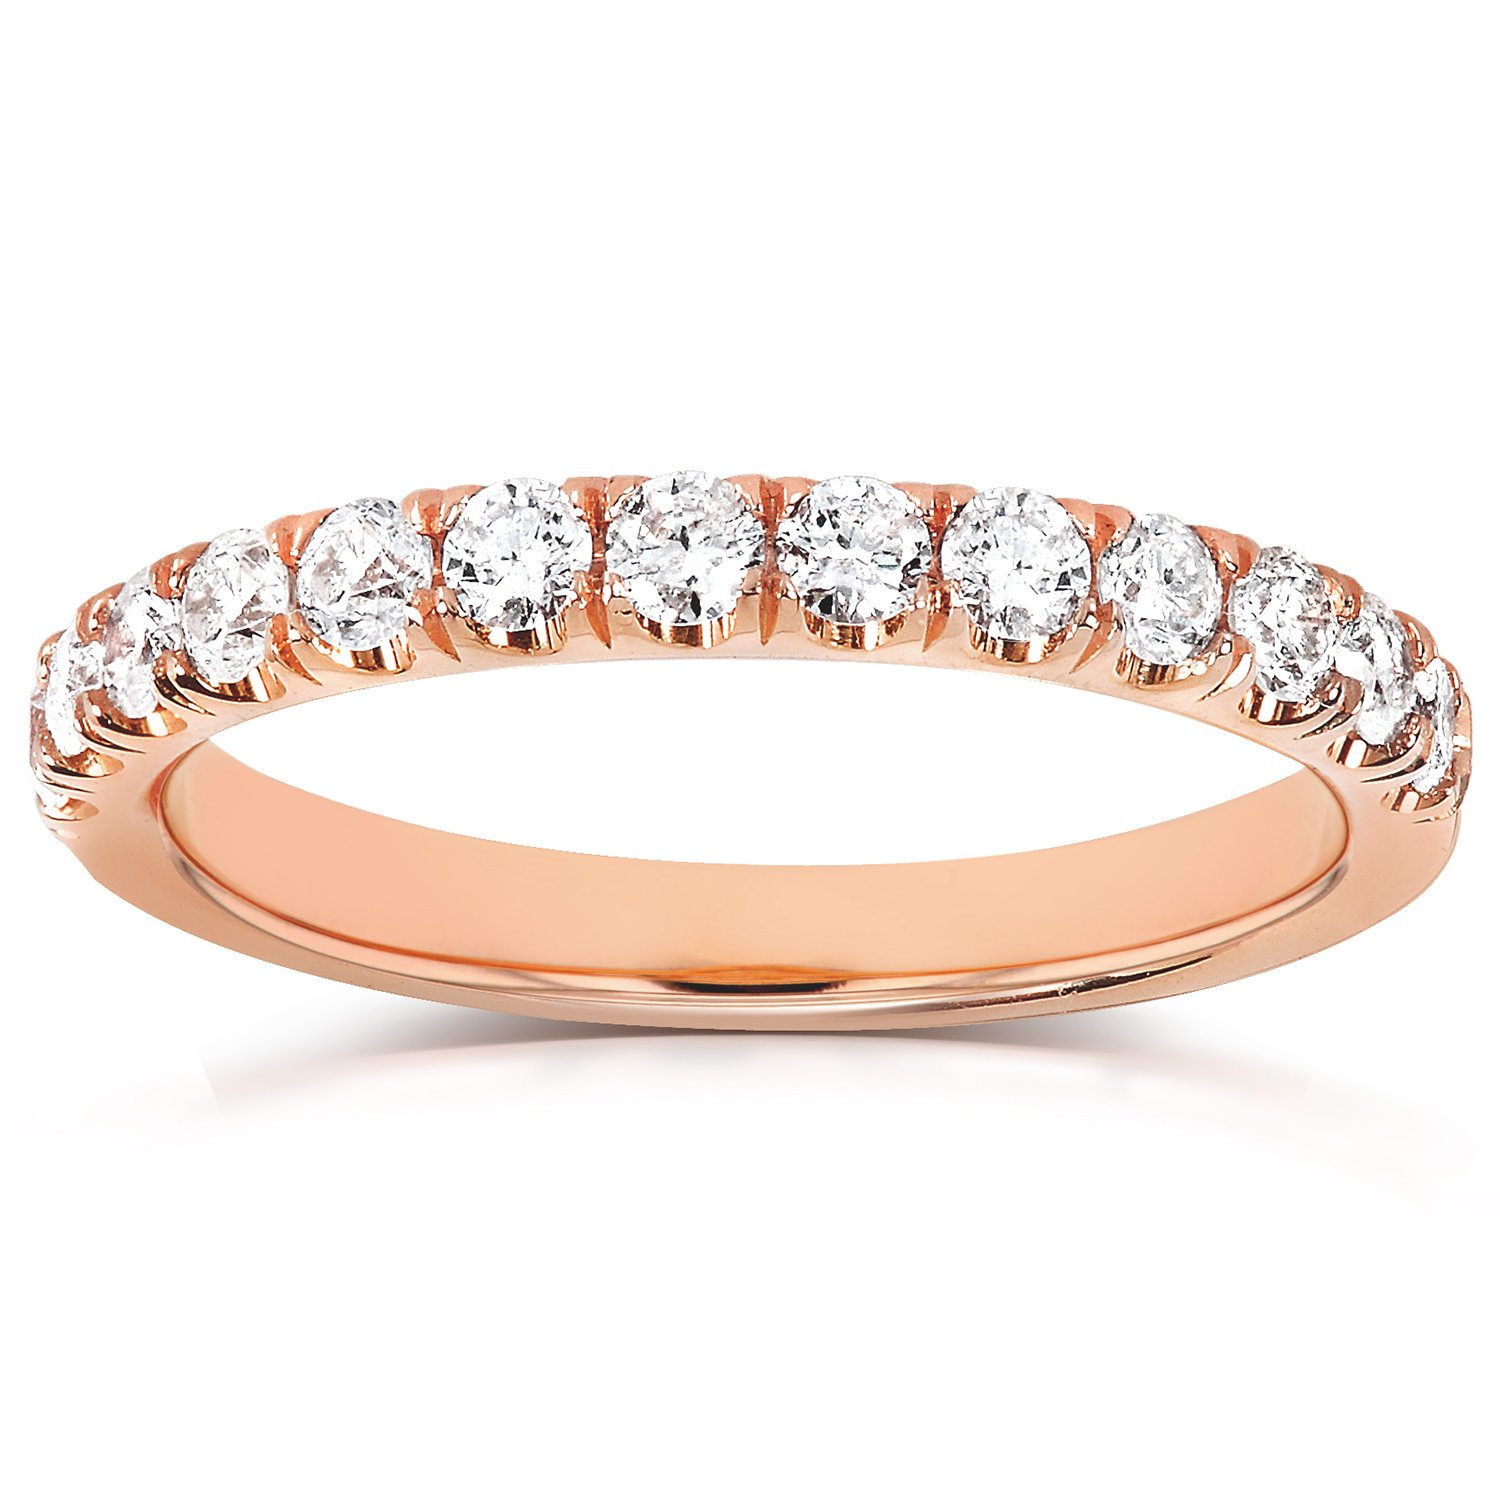 Diamond Comfort Fit Flame French Pave Band 1/2 carat (ctw) in 14K Rose Gold, Size 6.5